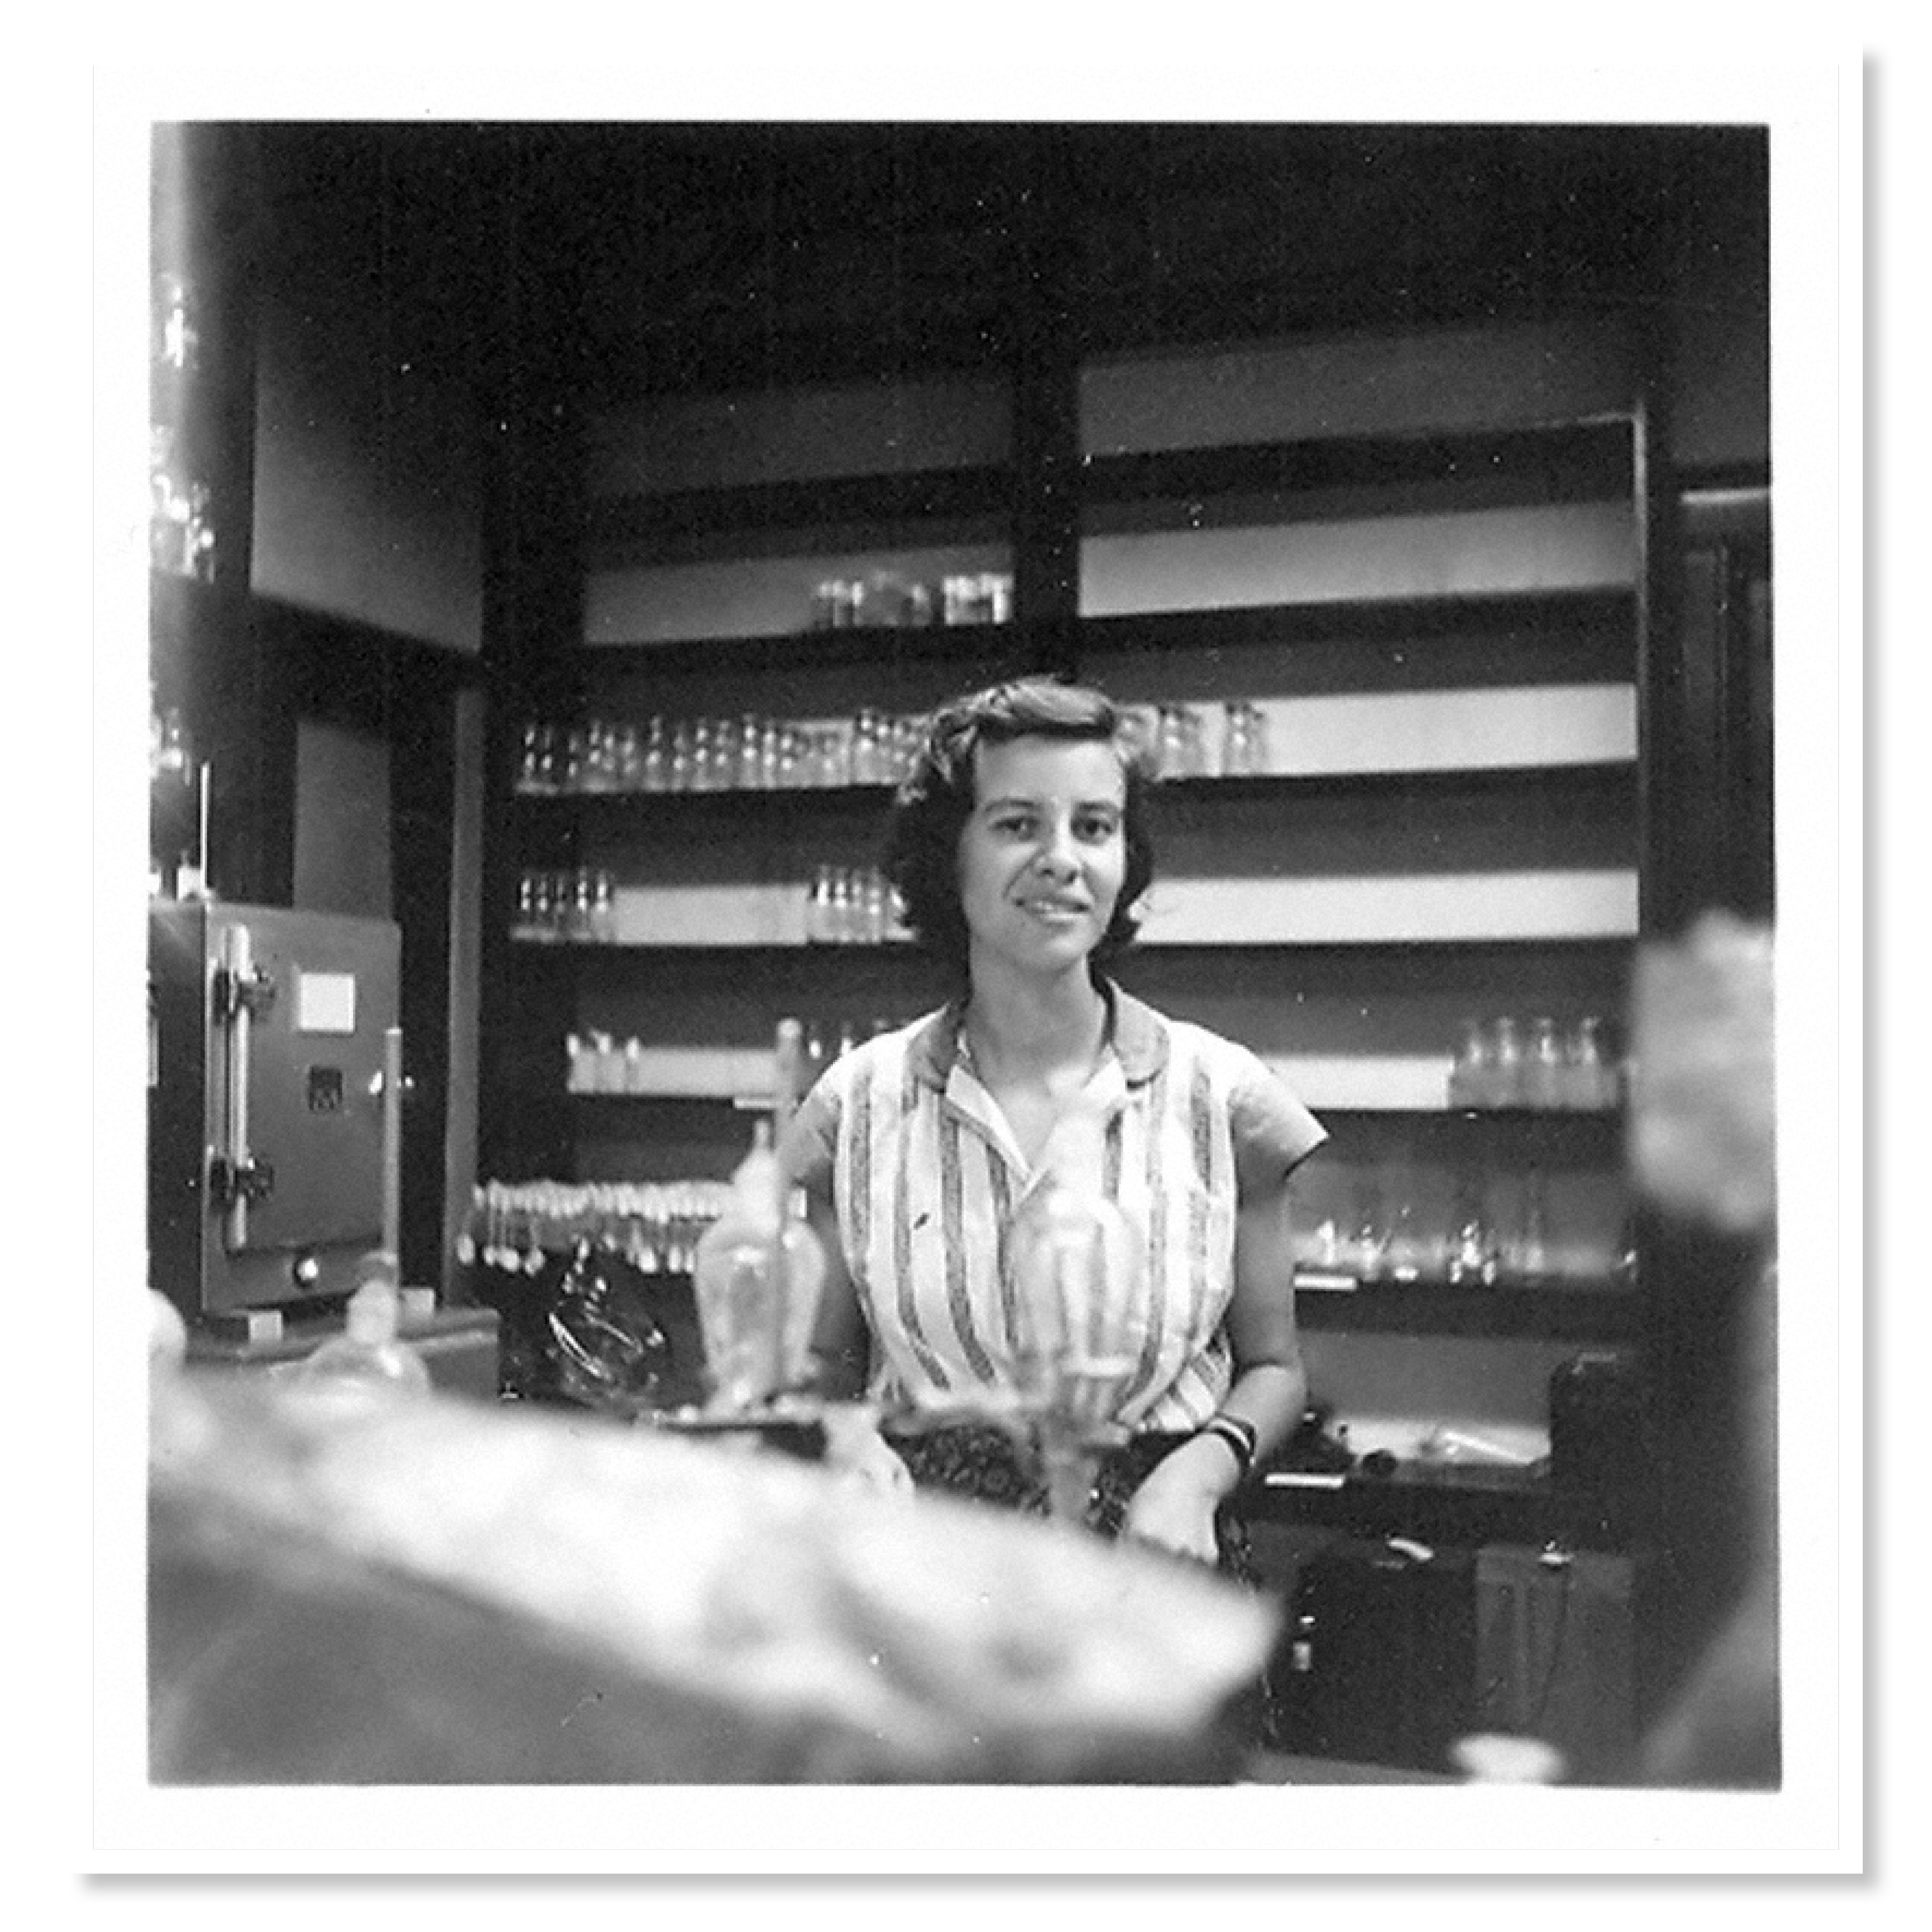 Lederberg made strides in the lab throughout the 1950s